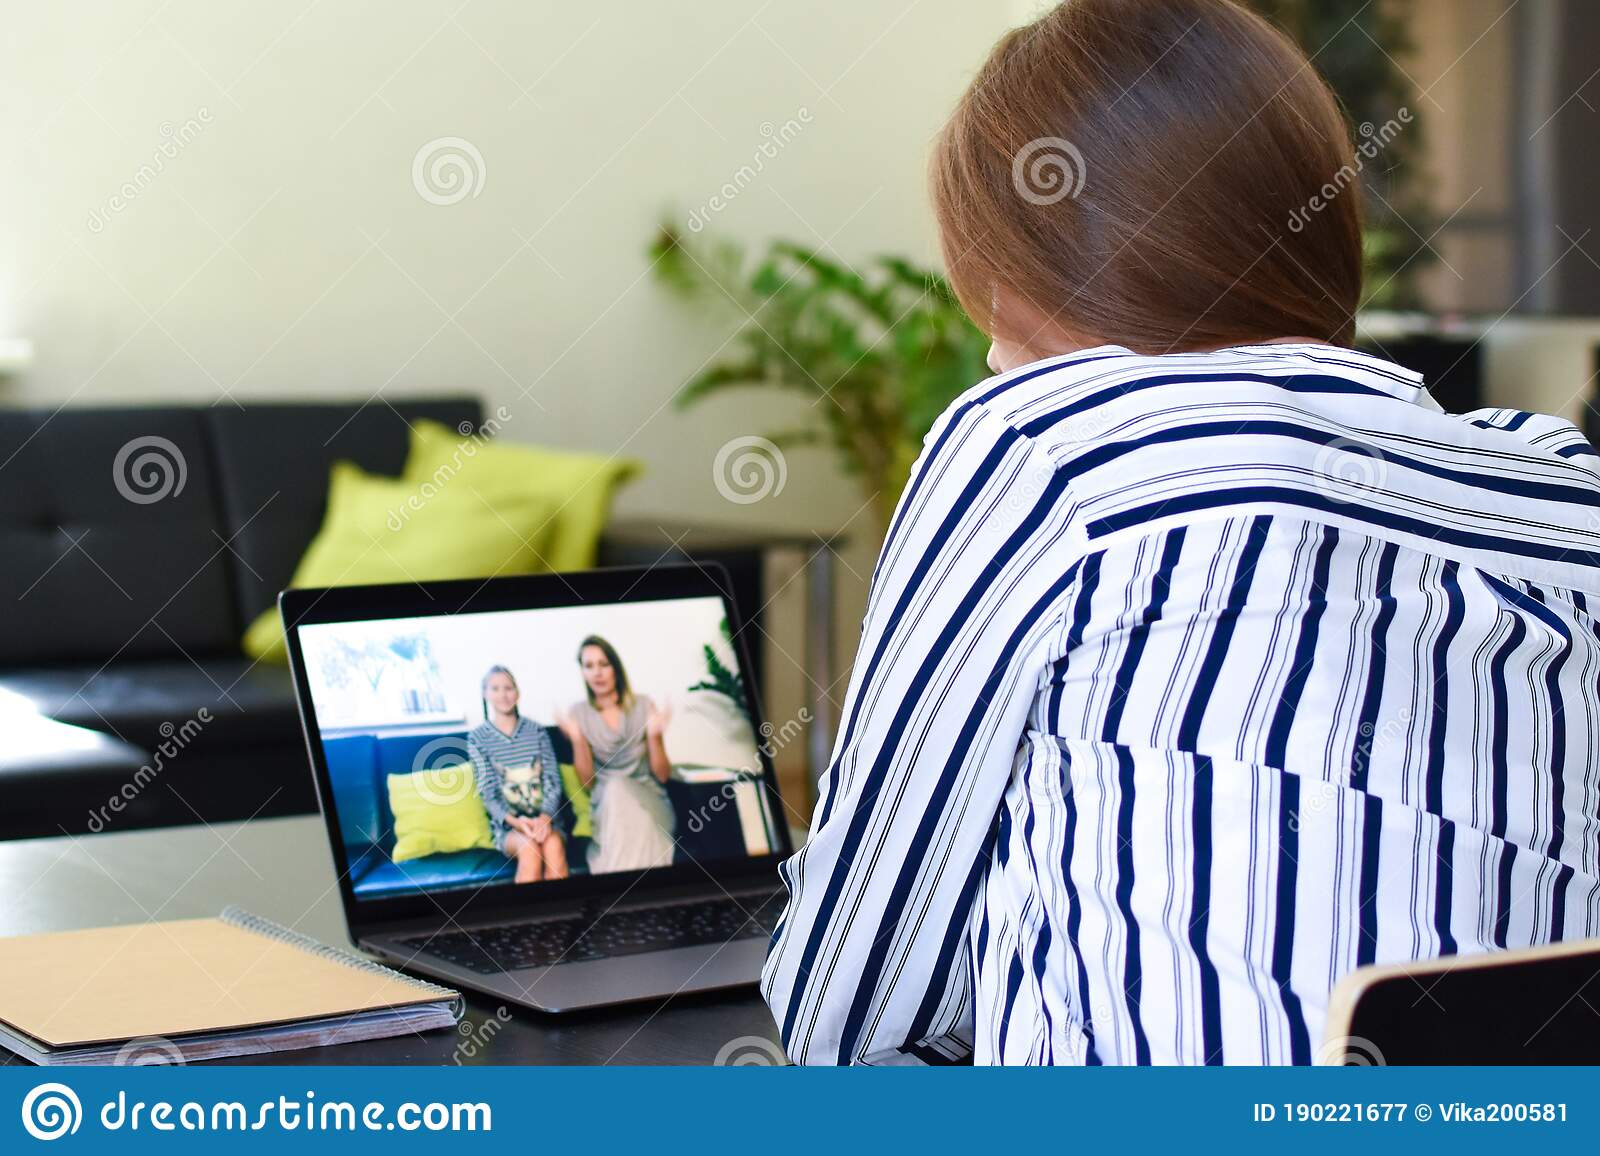 Woman Talking Video Chat With Family Online From Home ...